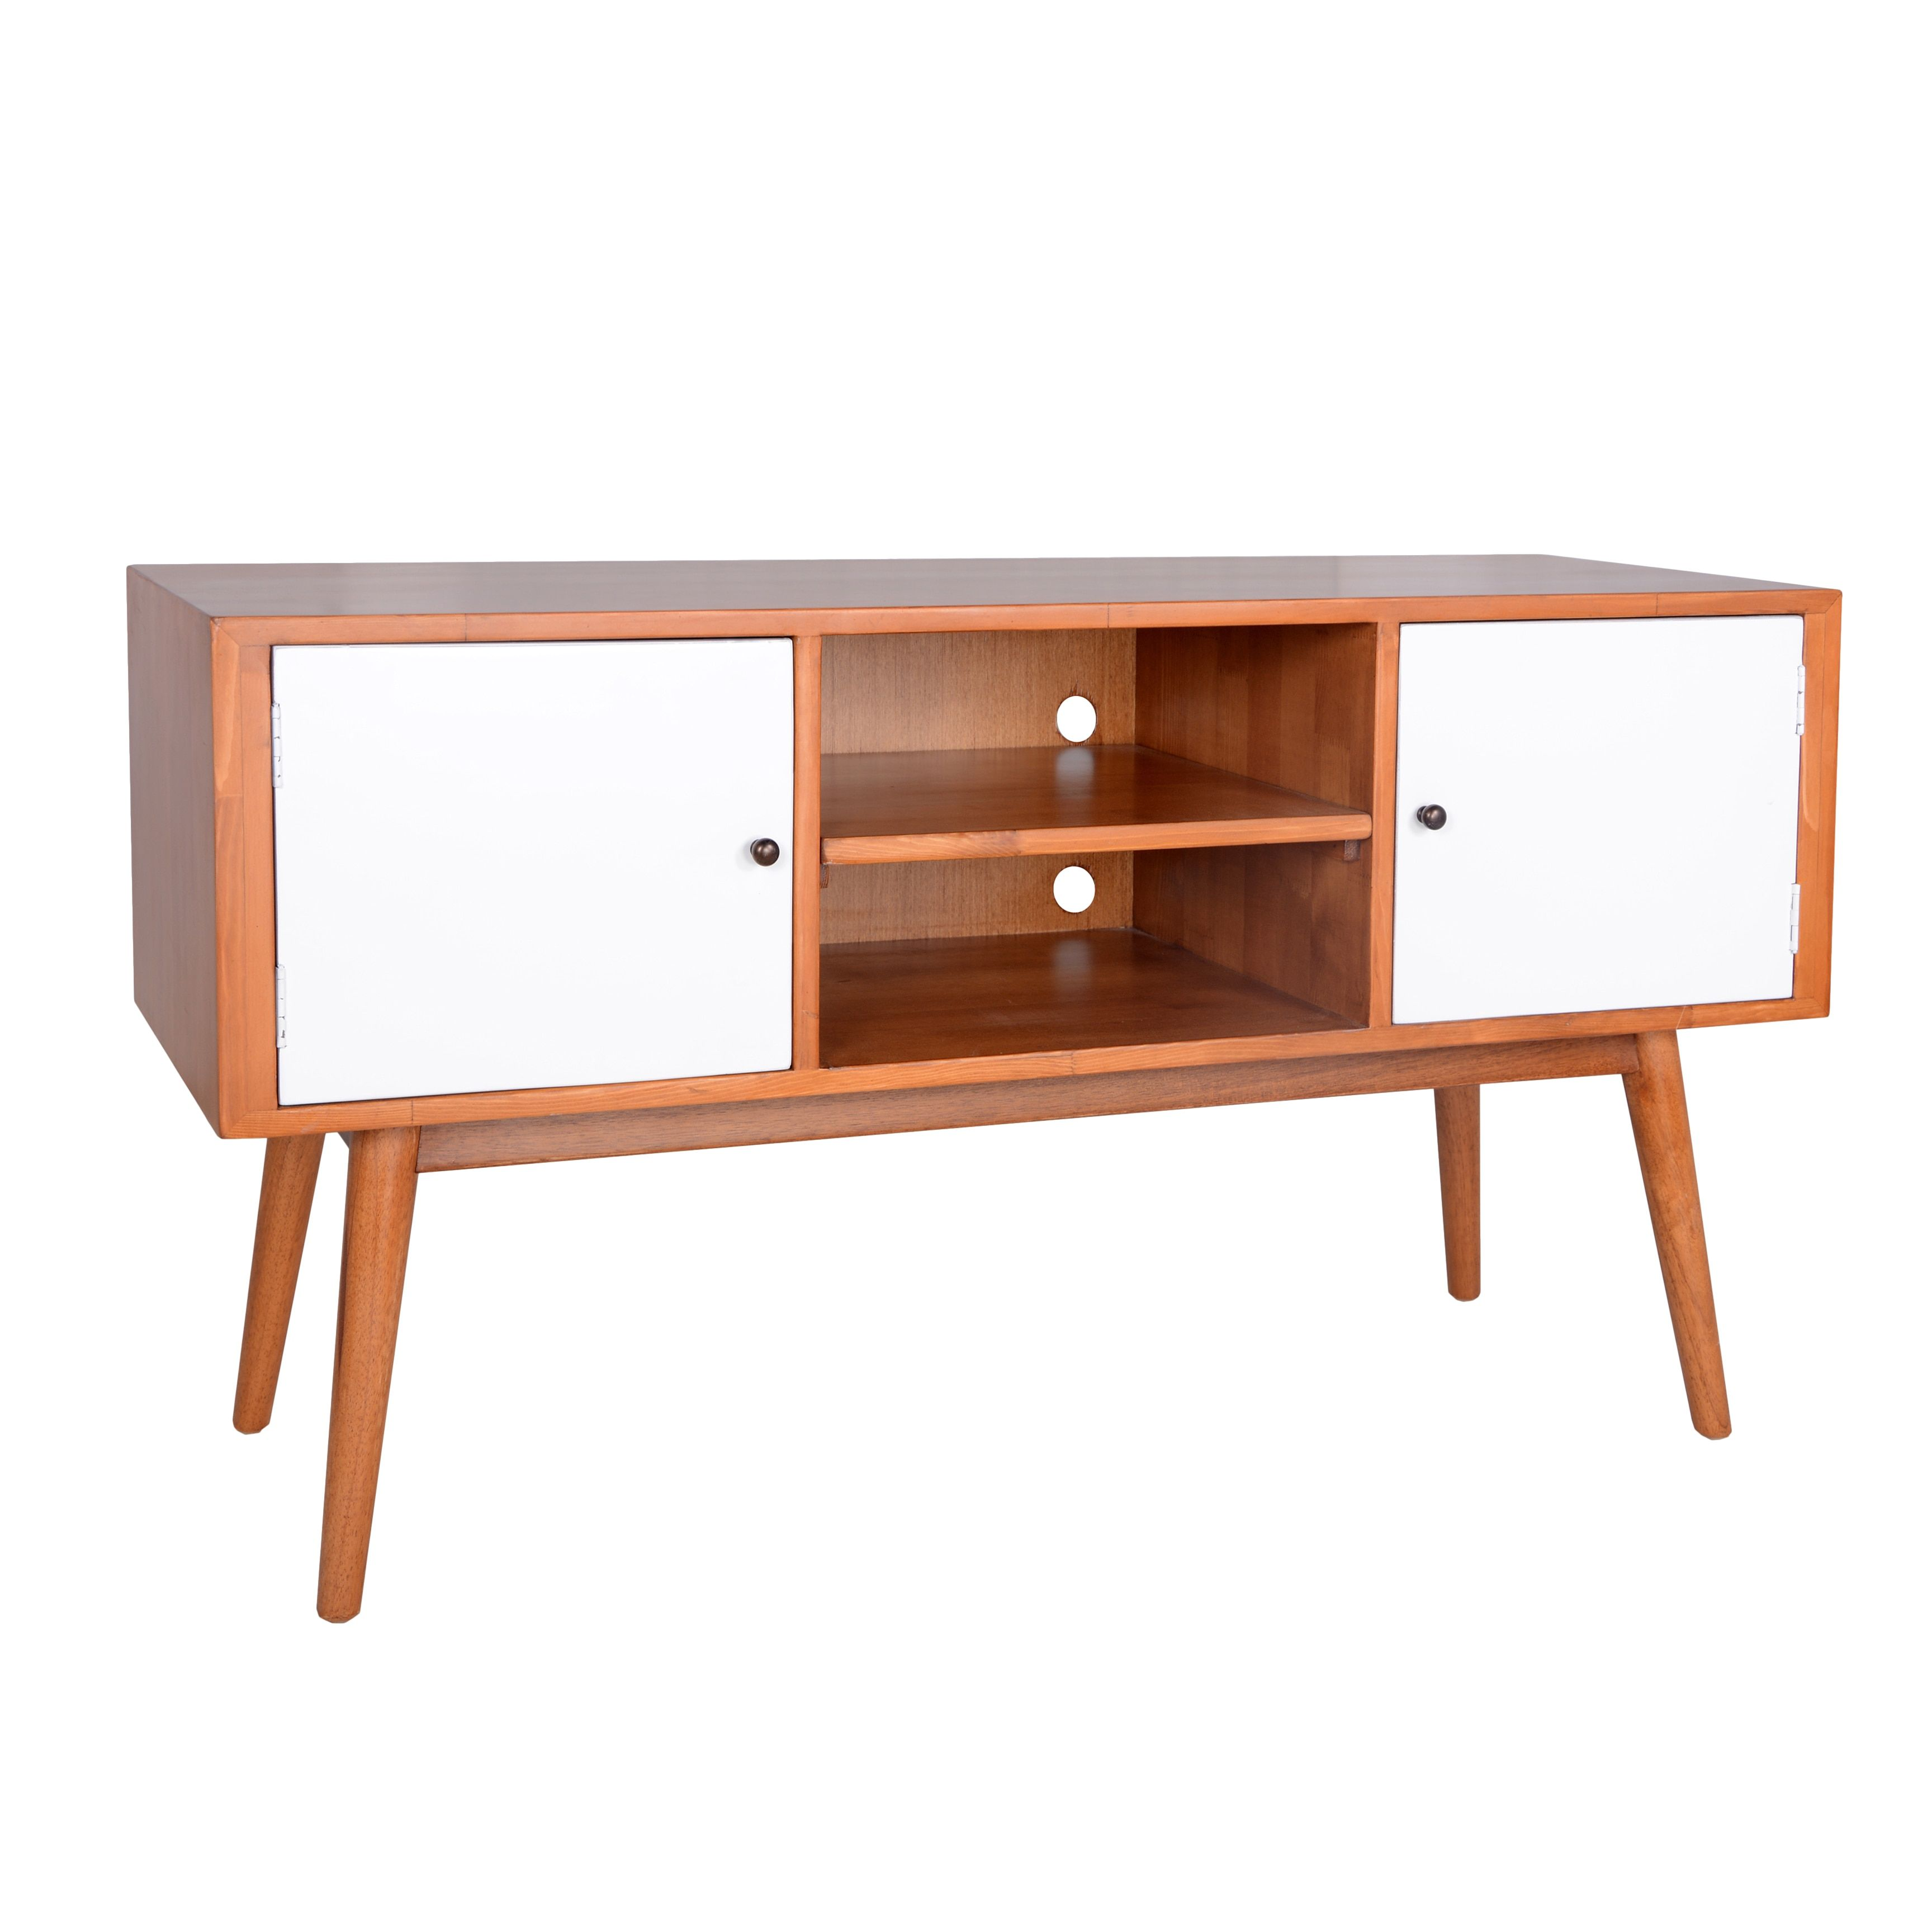 Tv television stands austin s furniture - Mid Century Modern Tv Stand Home Goods Free Shipping On Orders Over 45 At Overstock